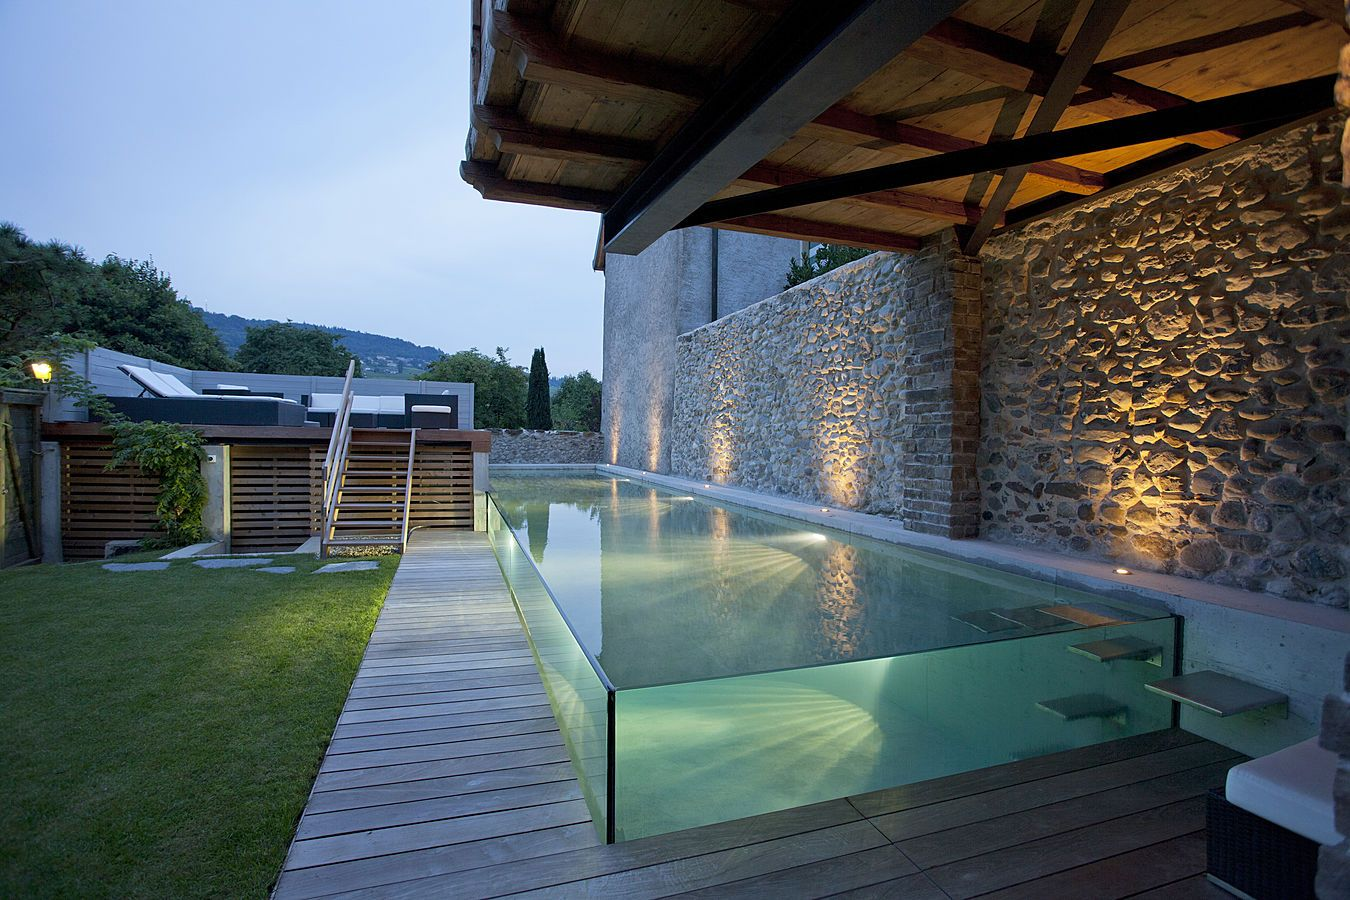 The Excelsior swimming pool with glass walls by Carré Bleu